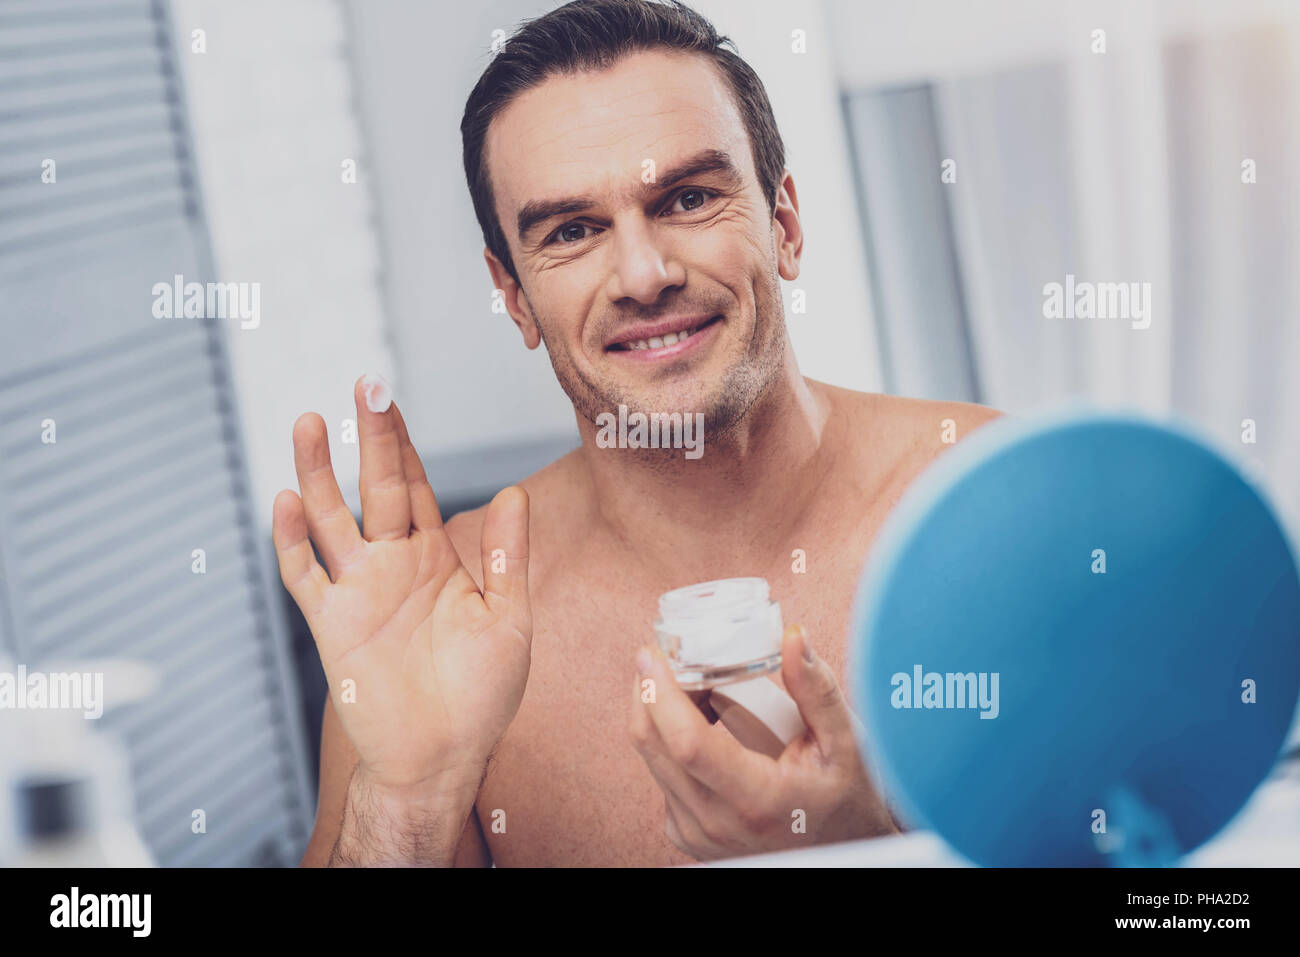 Smiling muscleman using face cream - Stock Image